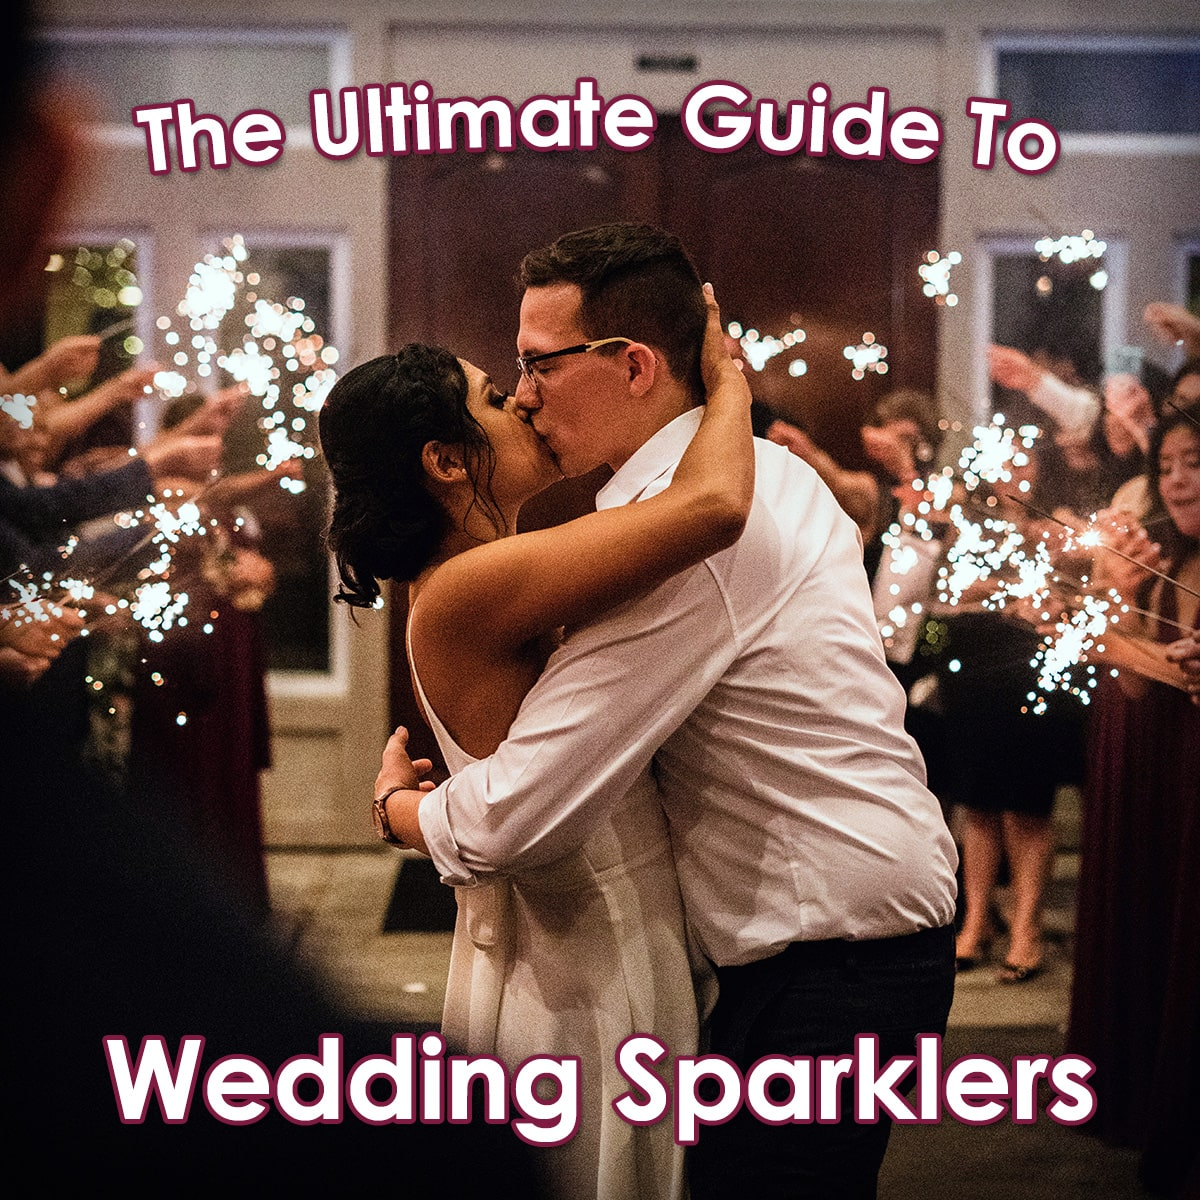 Image of the Ultimate Guide to Wedding Sparklers